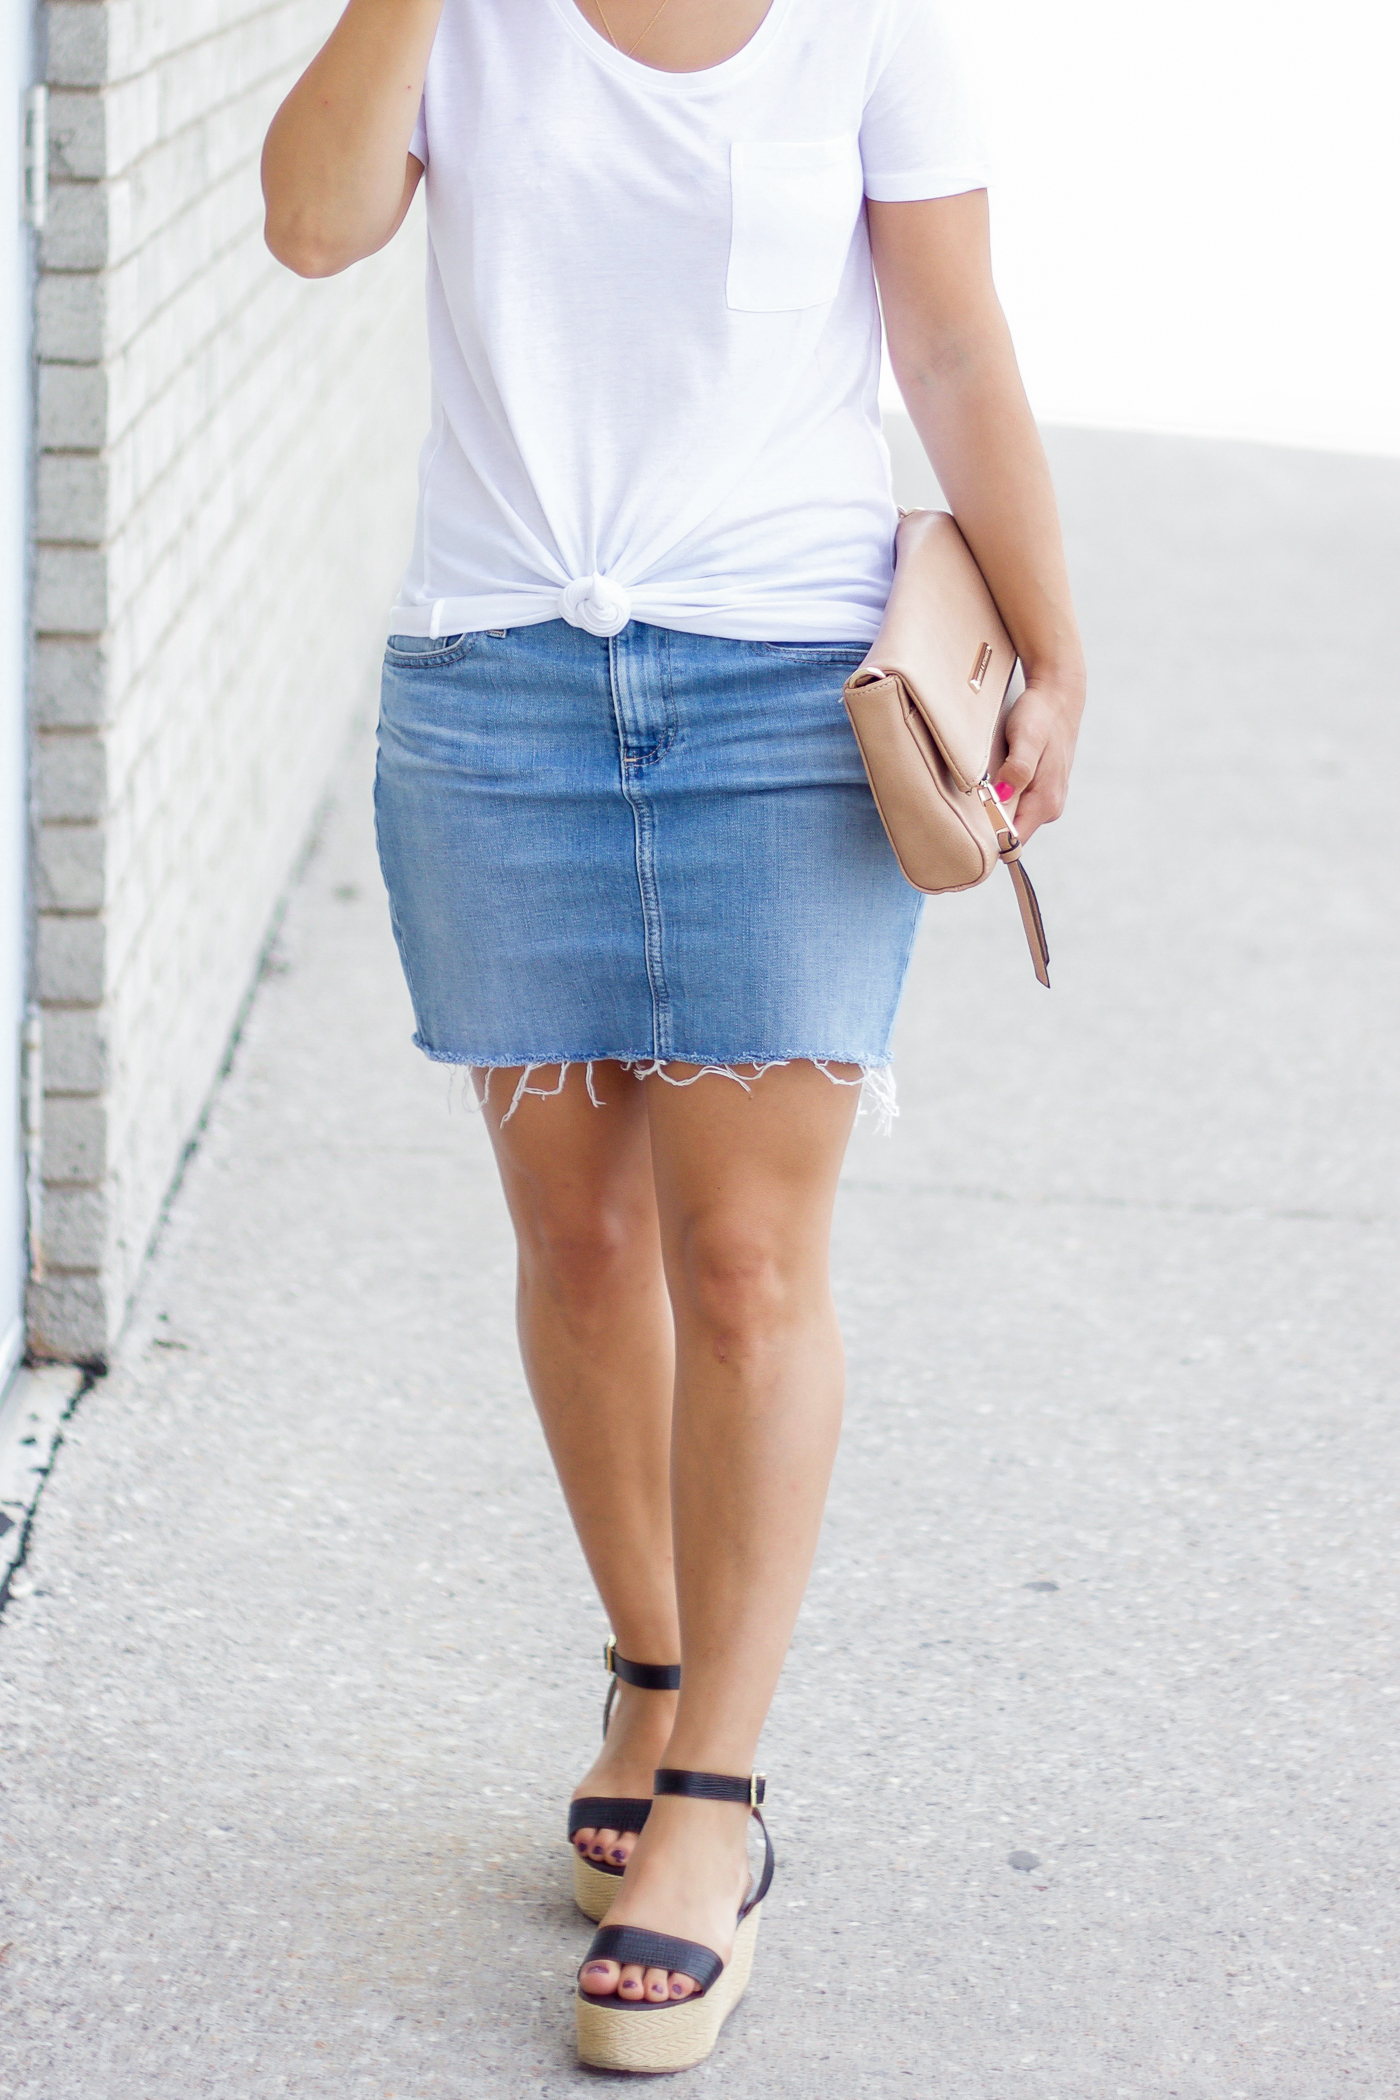 White t-shirt from Sears Canada with a light wash denim skirt for summer